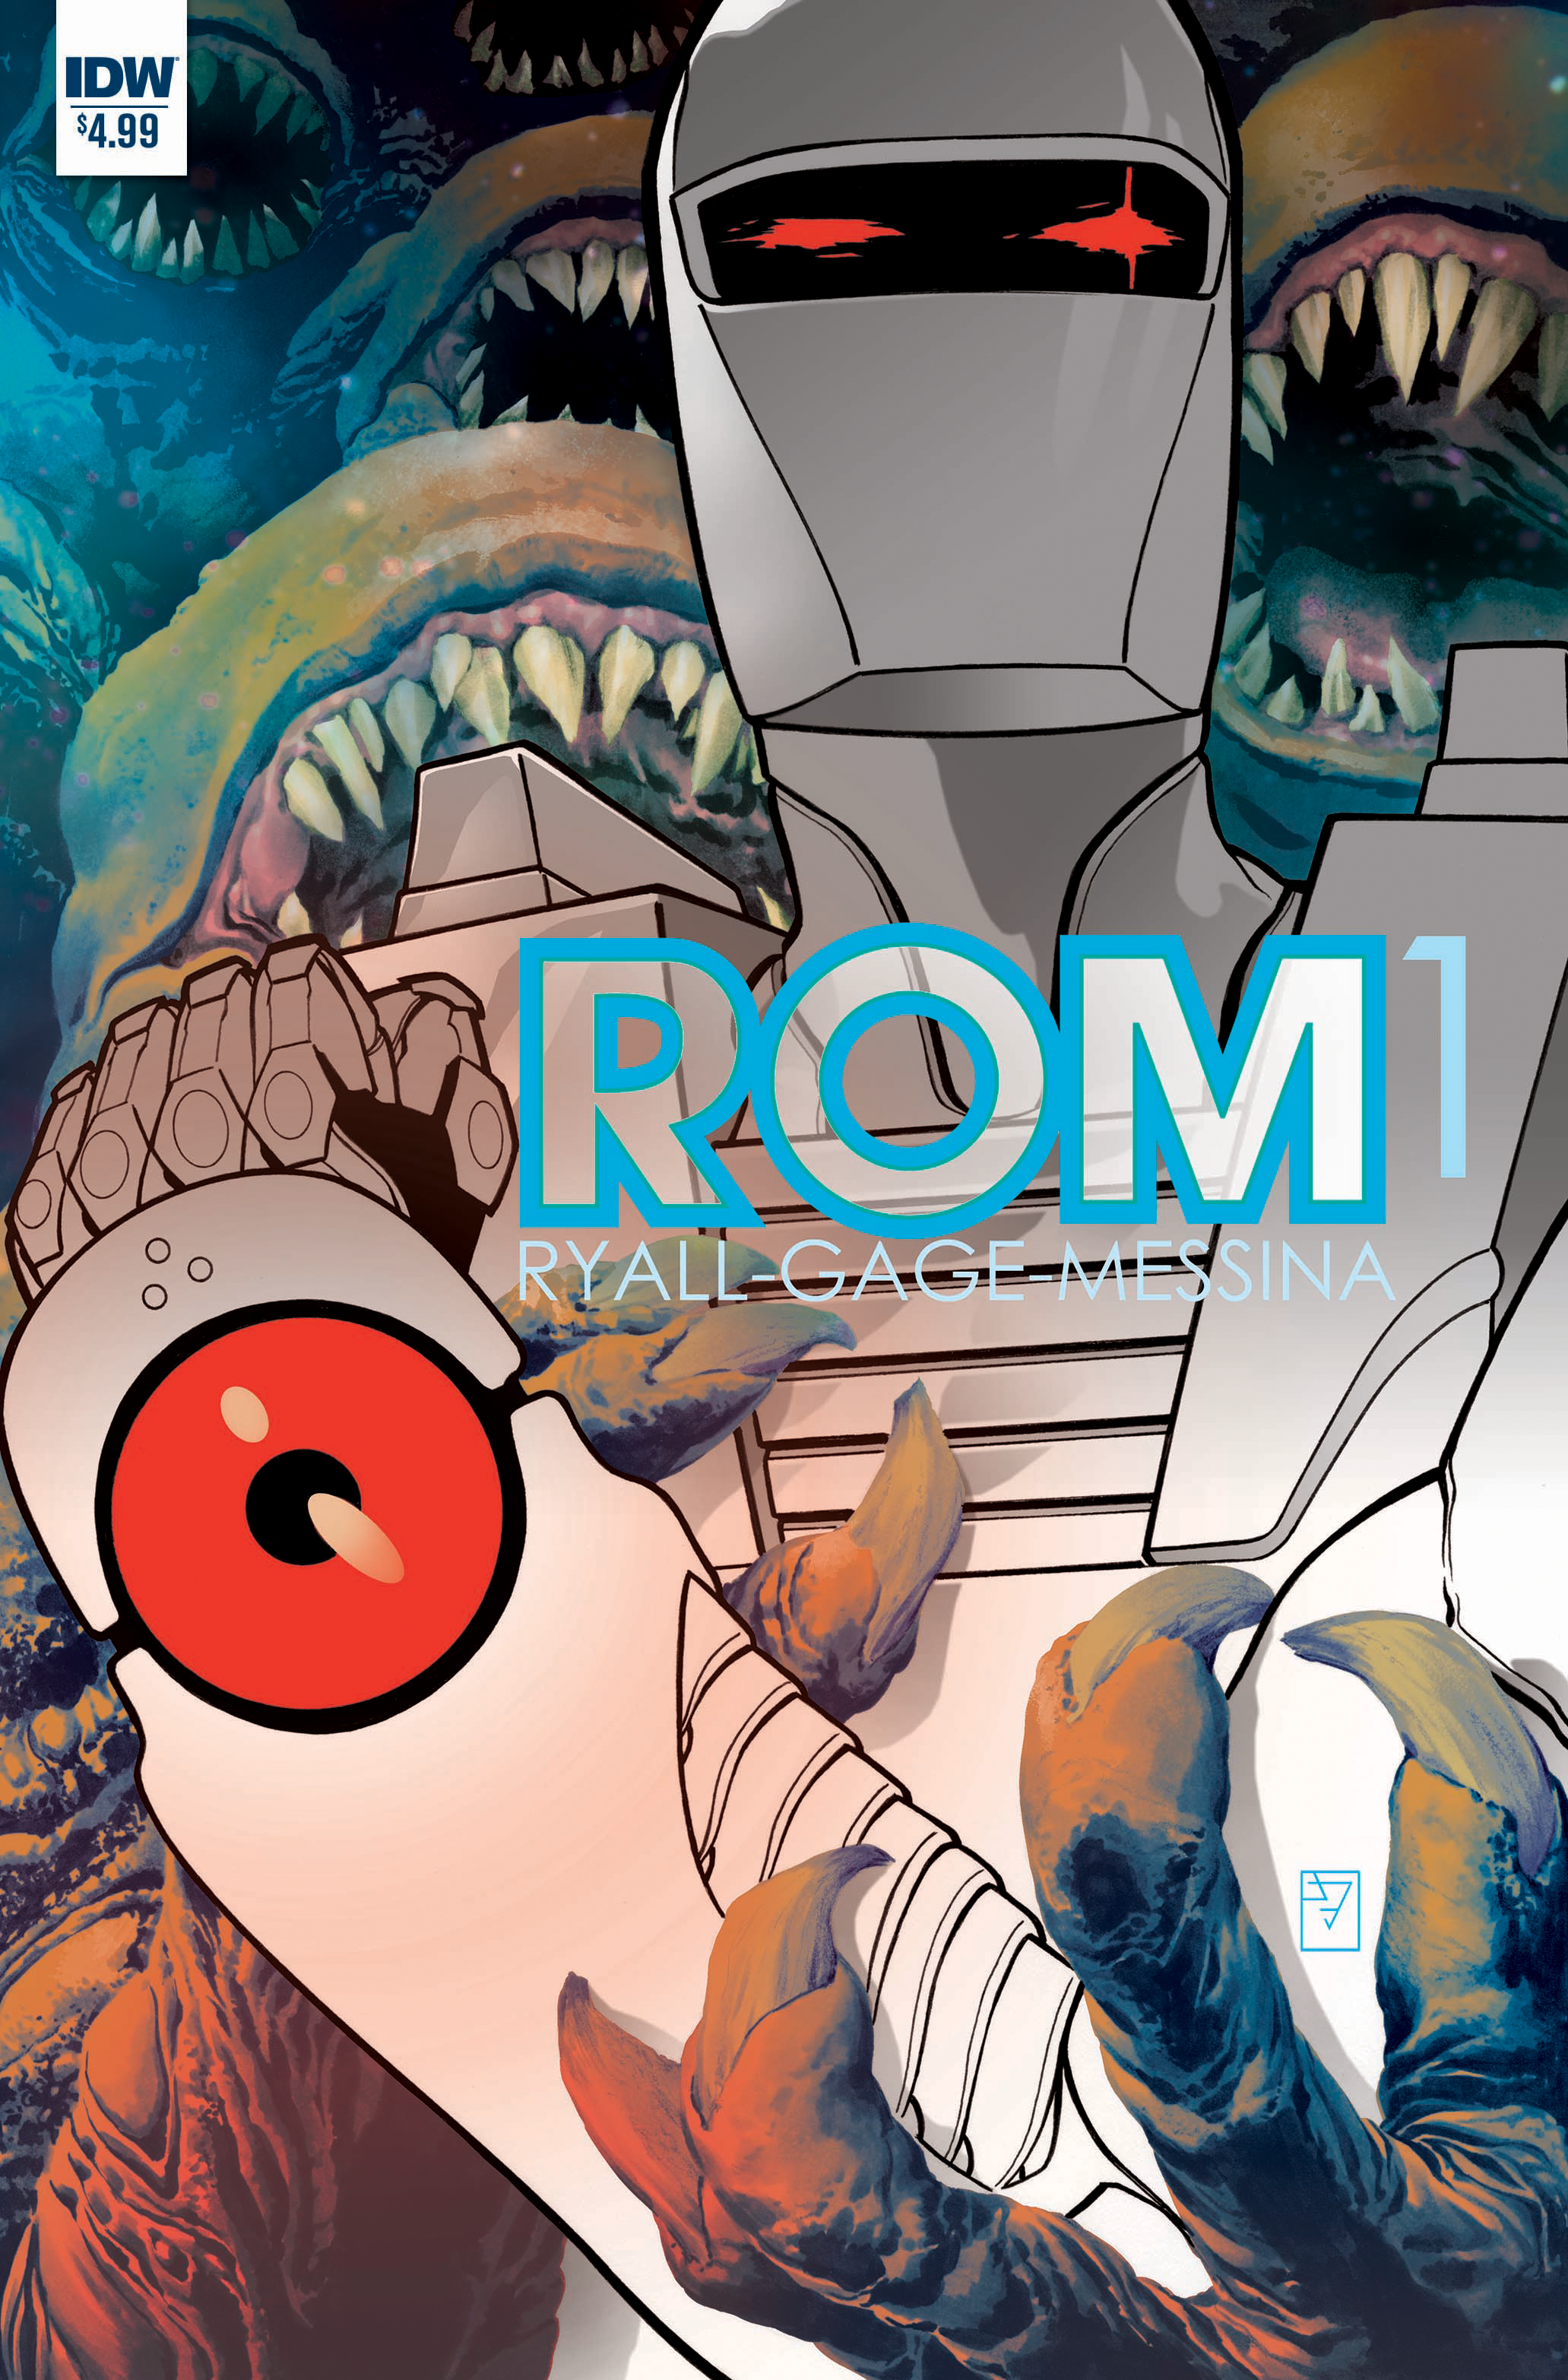 The First Details on Rom's Triumphant Return to Comics